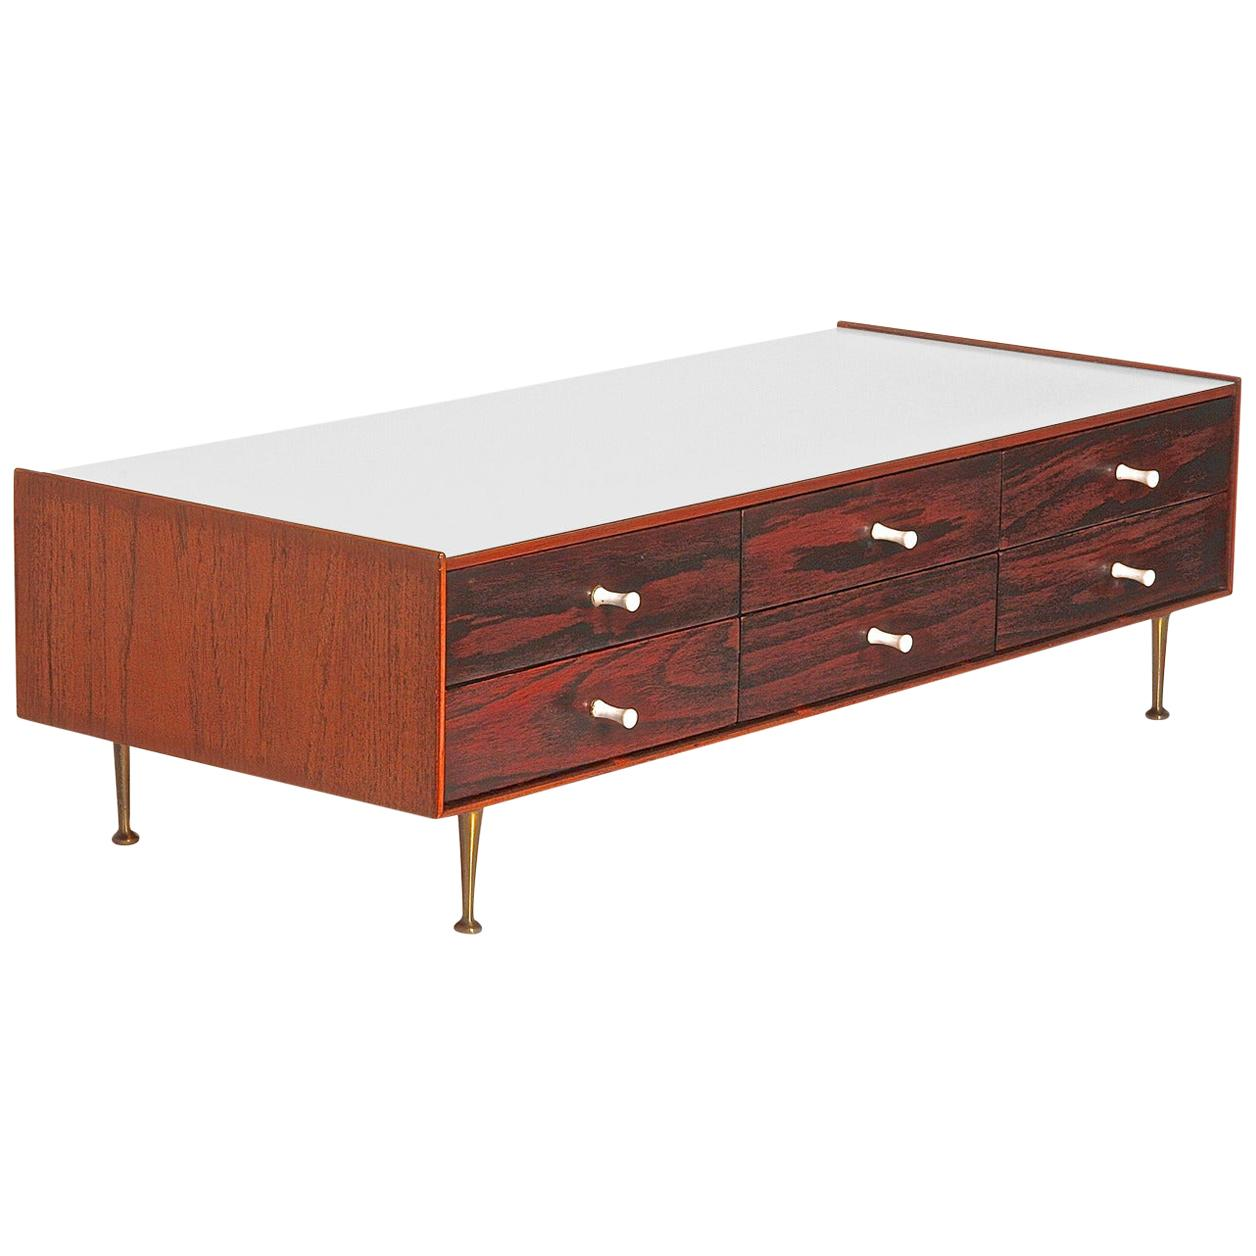 George Nelson Model 5215 Rosewood Jewelry Chest with Miniature Legs, USA 1955